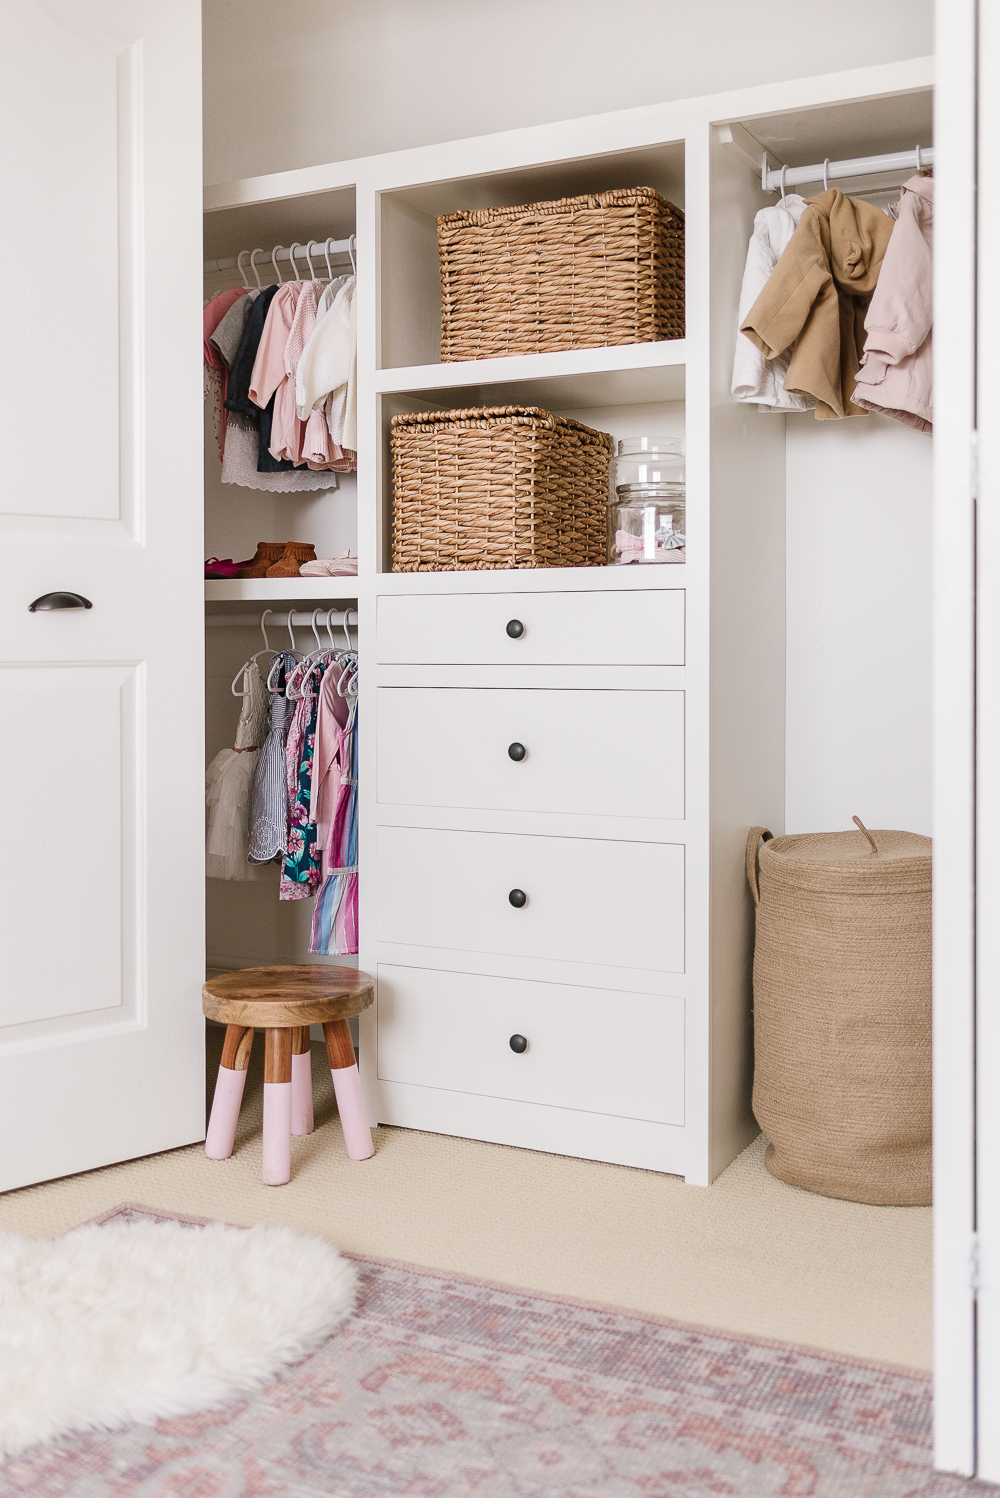 Closet Organization system with drawers and shelves built-in